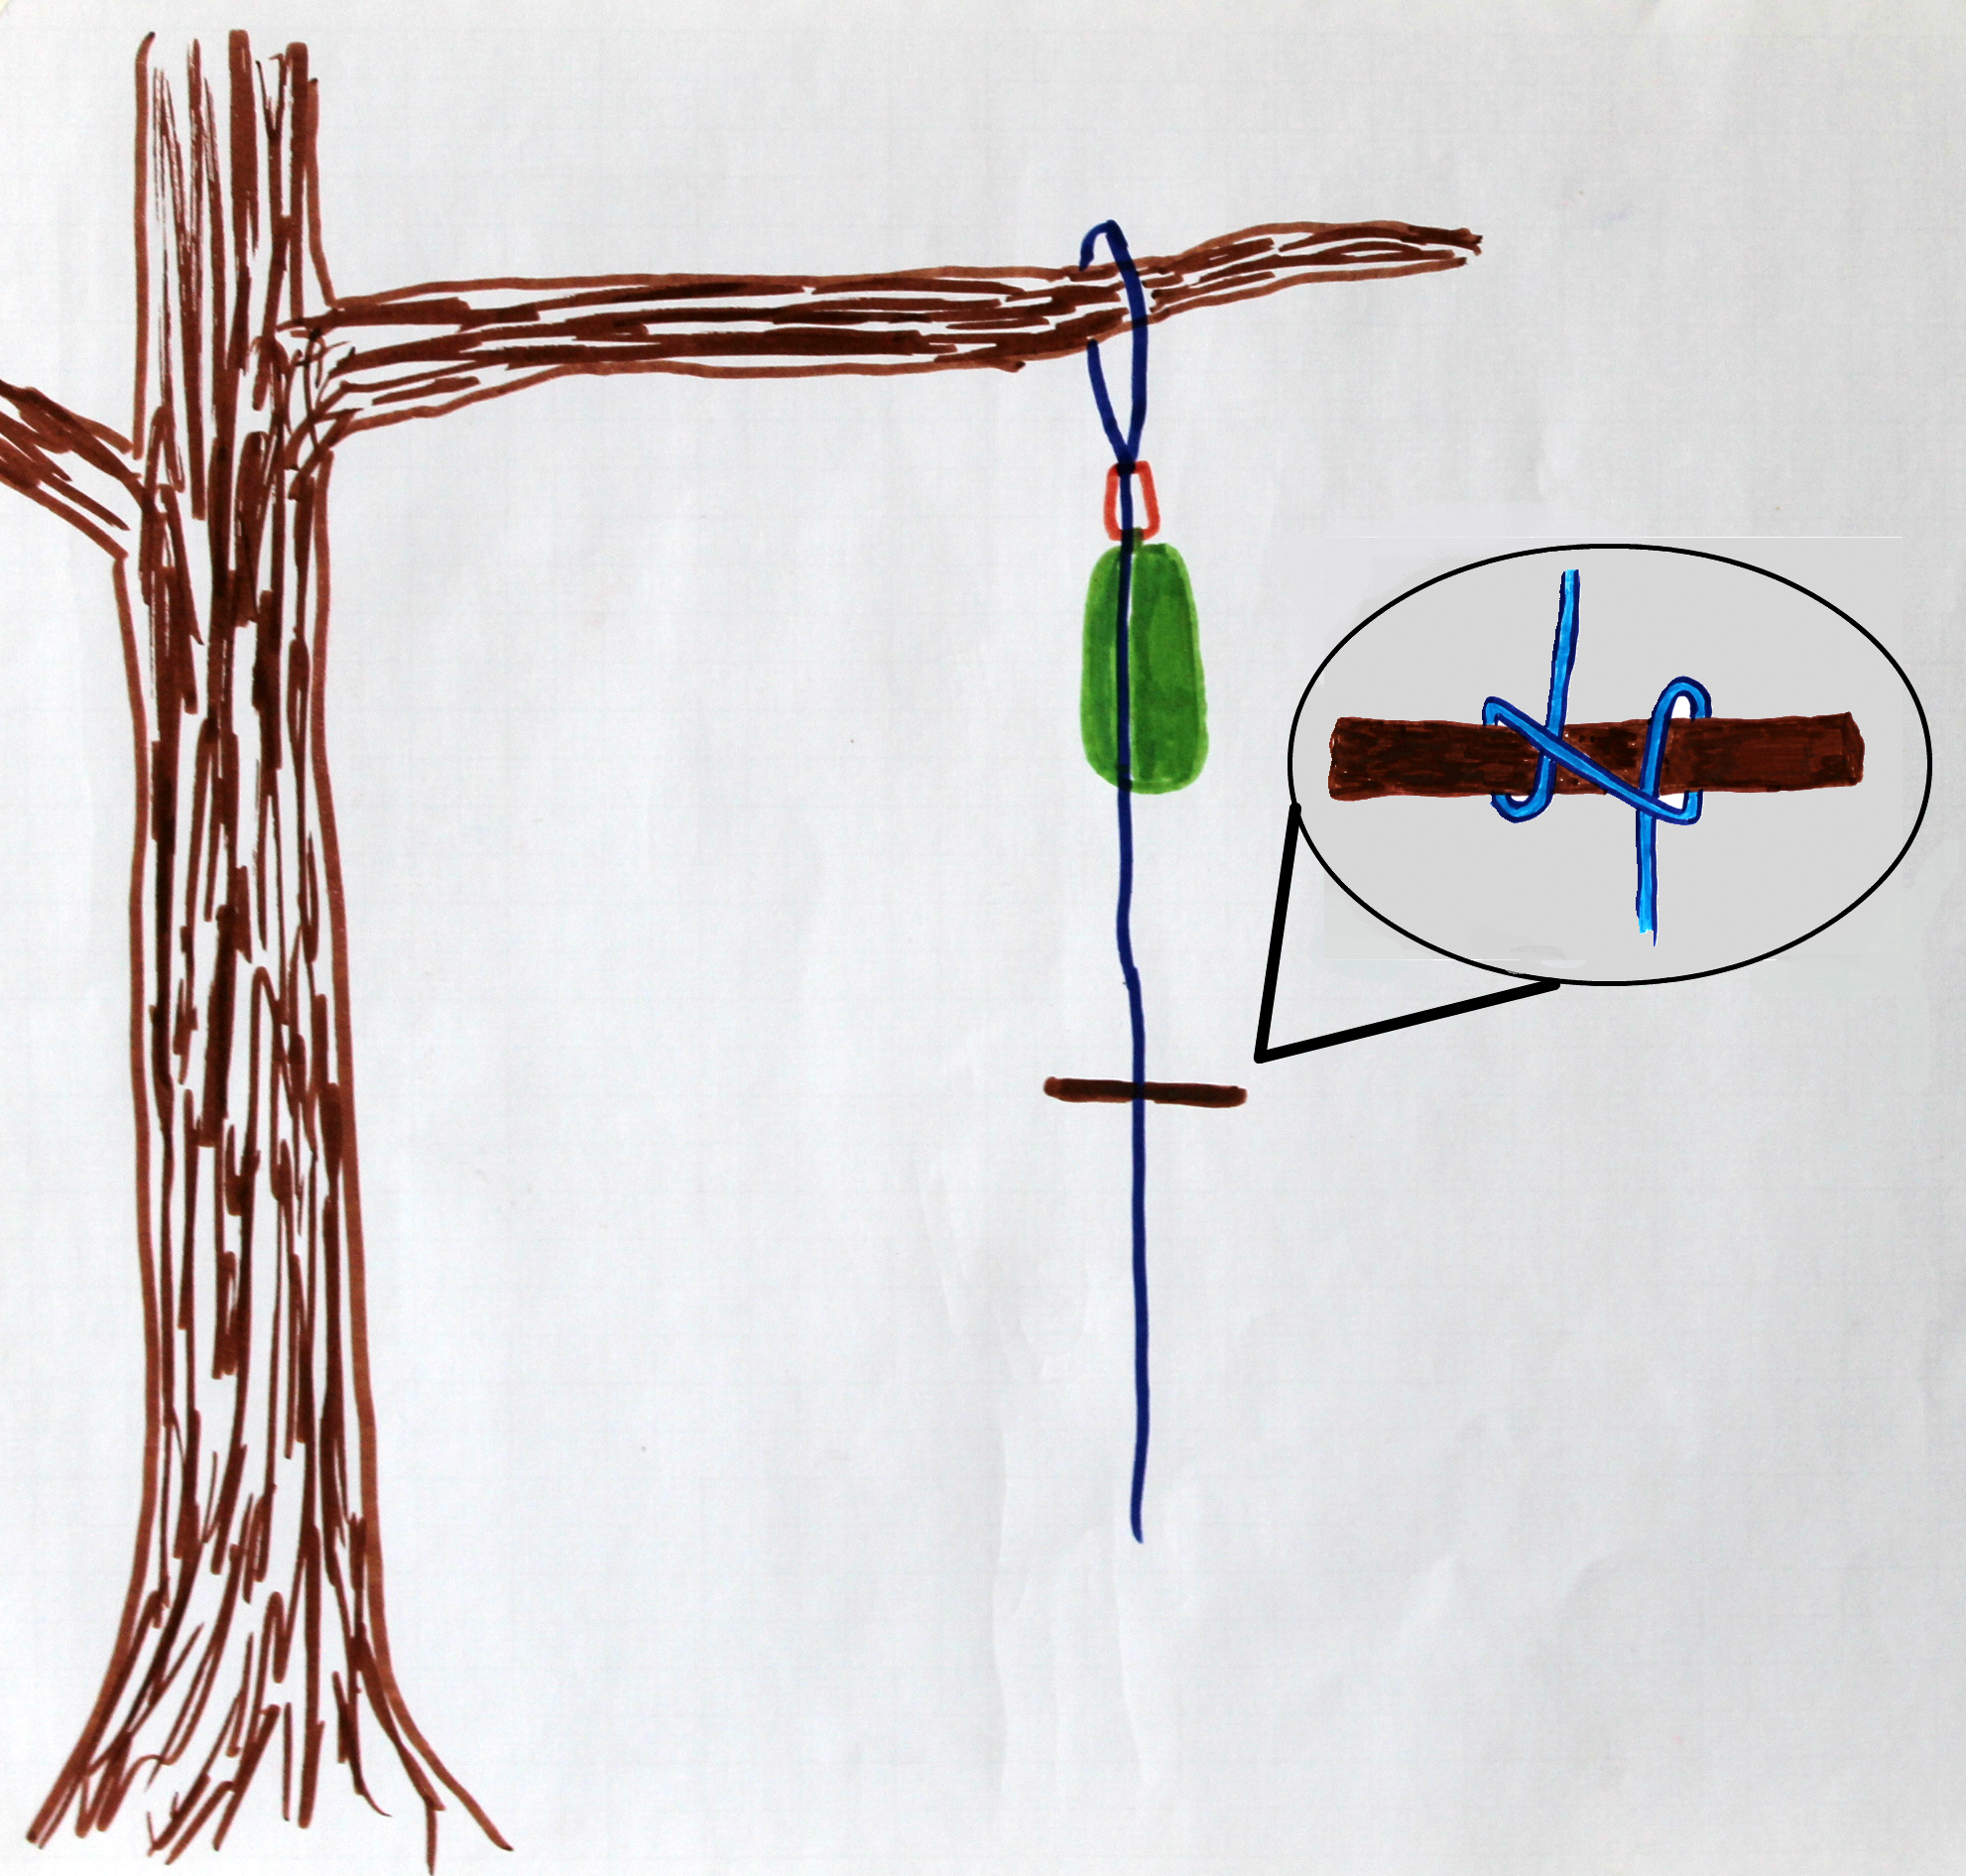 5 Ways To Hang A Bear Bag Mom Goes Camping Pouch Wiring Diagram While Holding The Food In Air Use Clove Hitch Tie